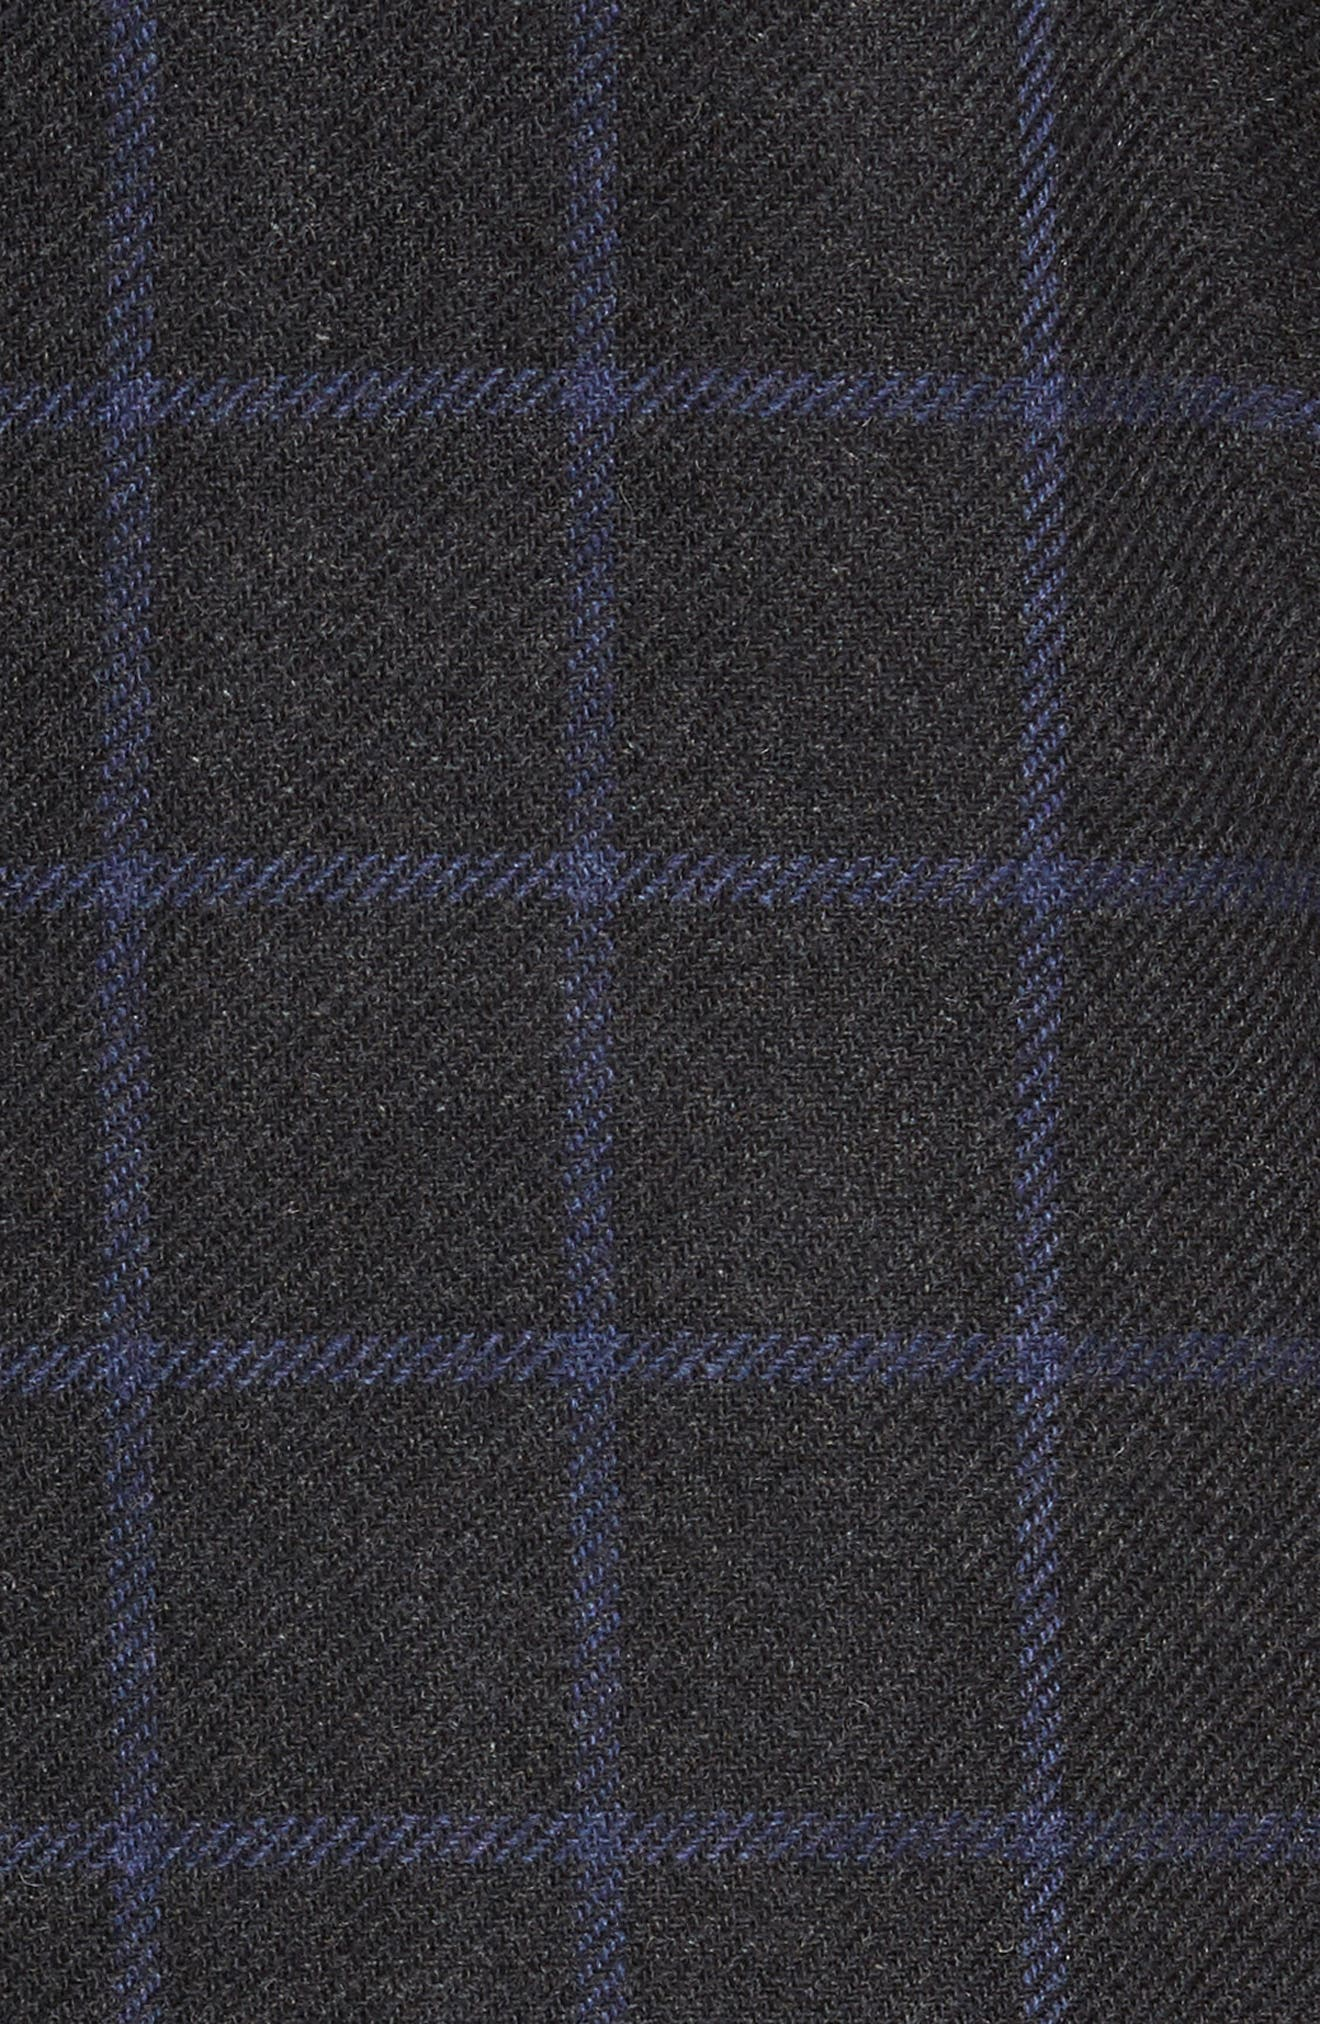 Trim Fit Windowpane Wool Blend Sport Coat,                             Alternate thumbnail 6, color,                             024